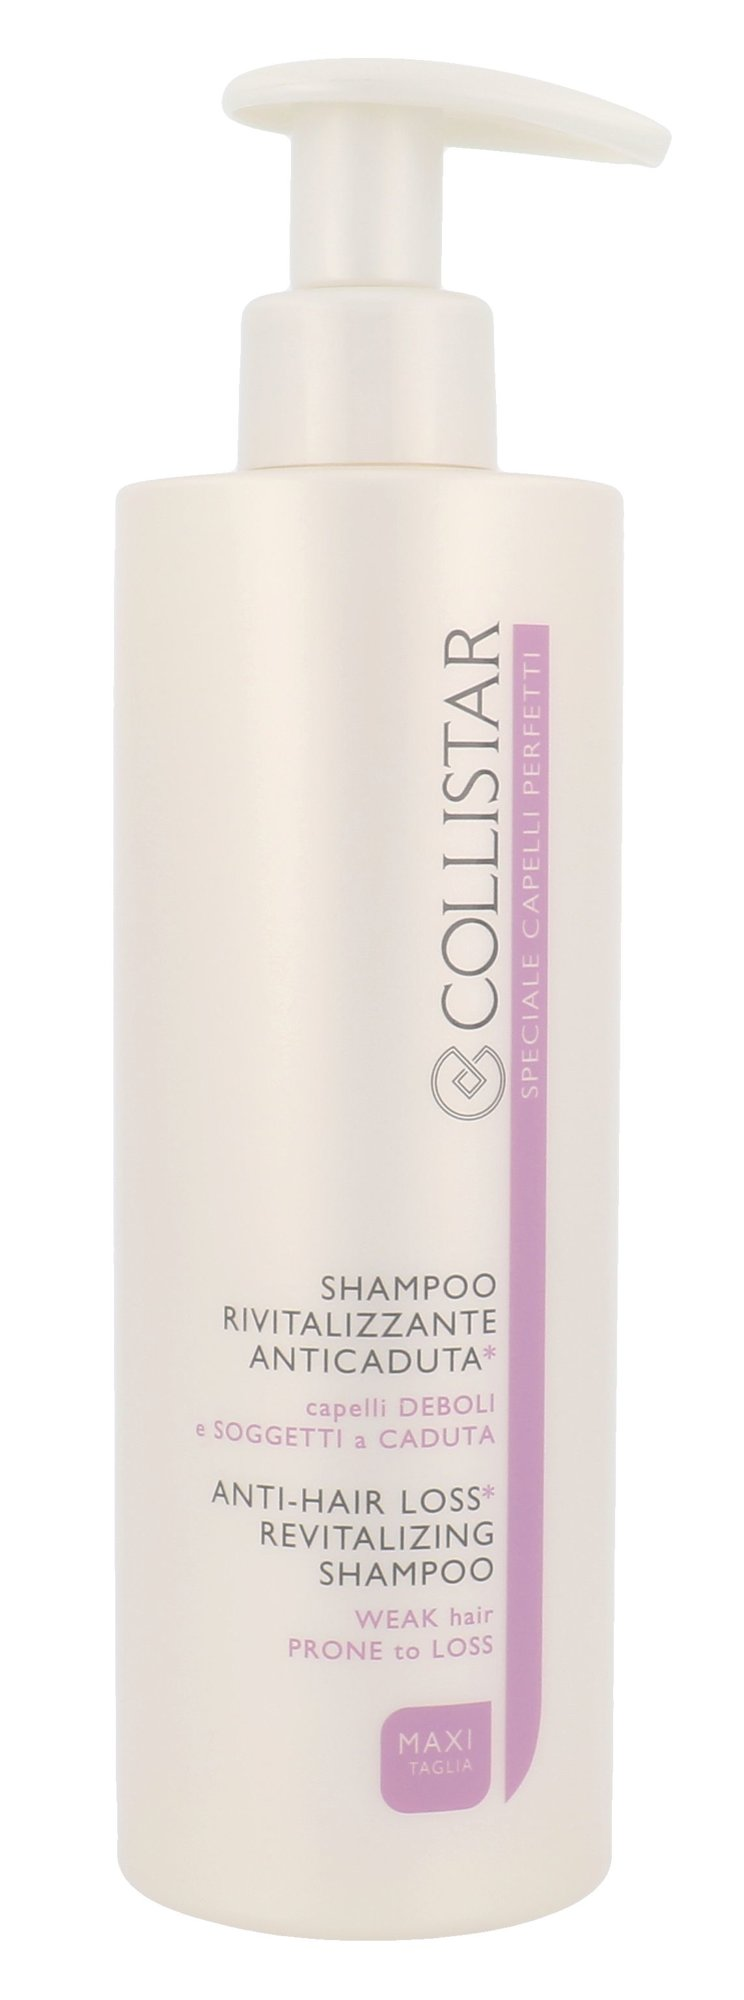 Collistar Anti Hair Loss Cosmetic 400ml